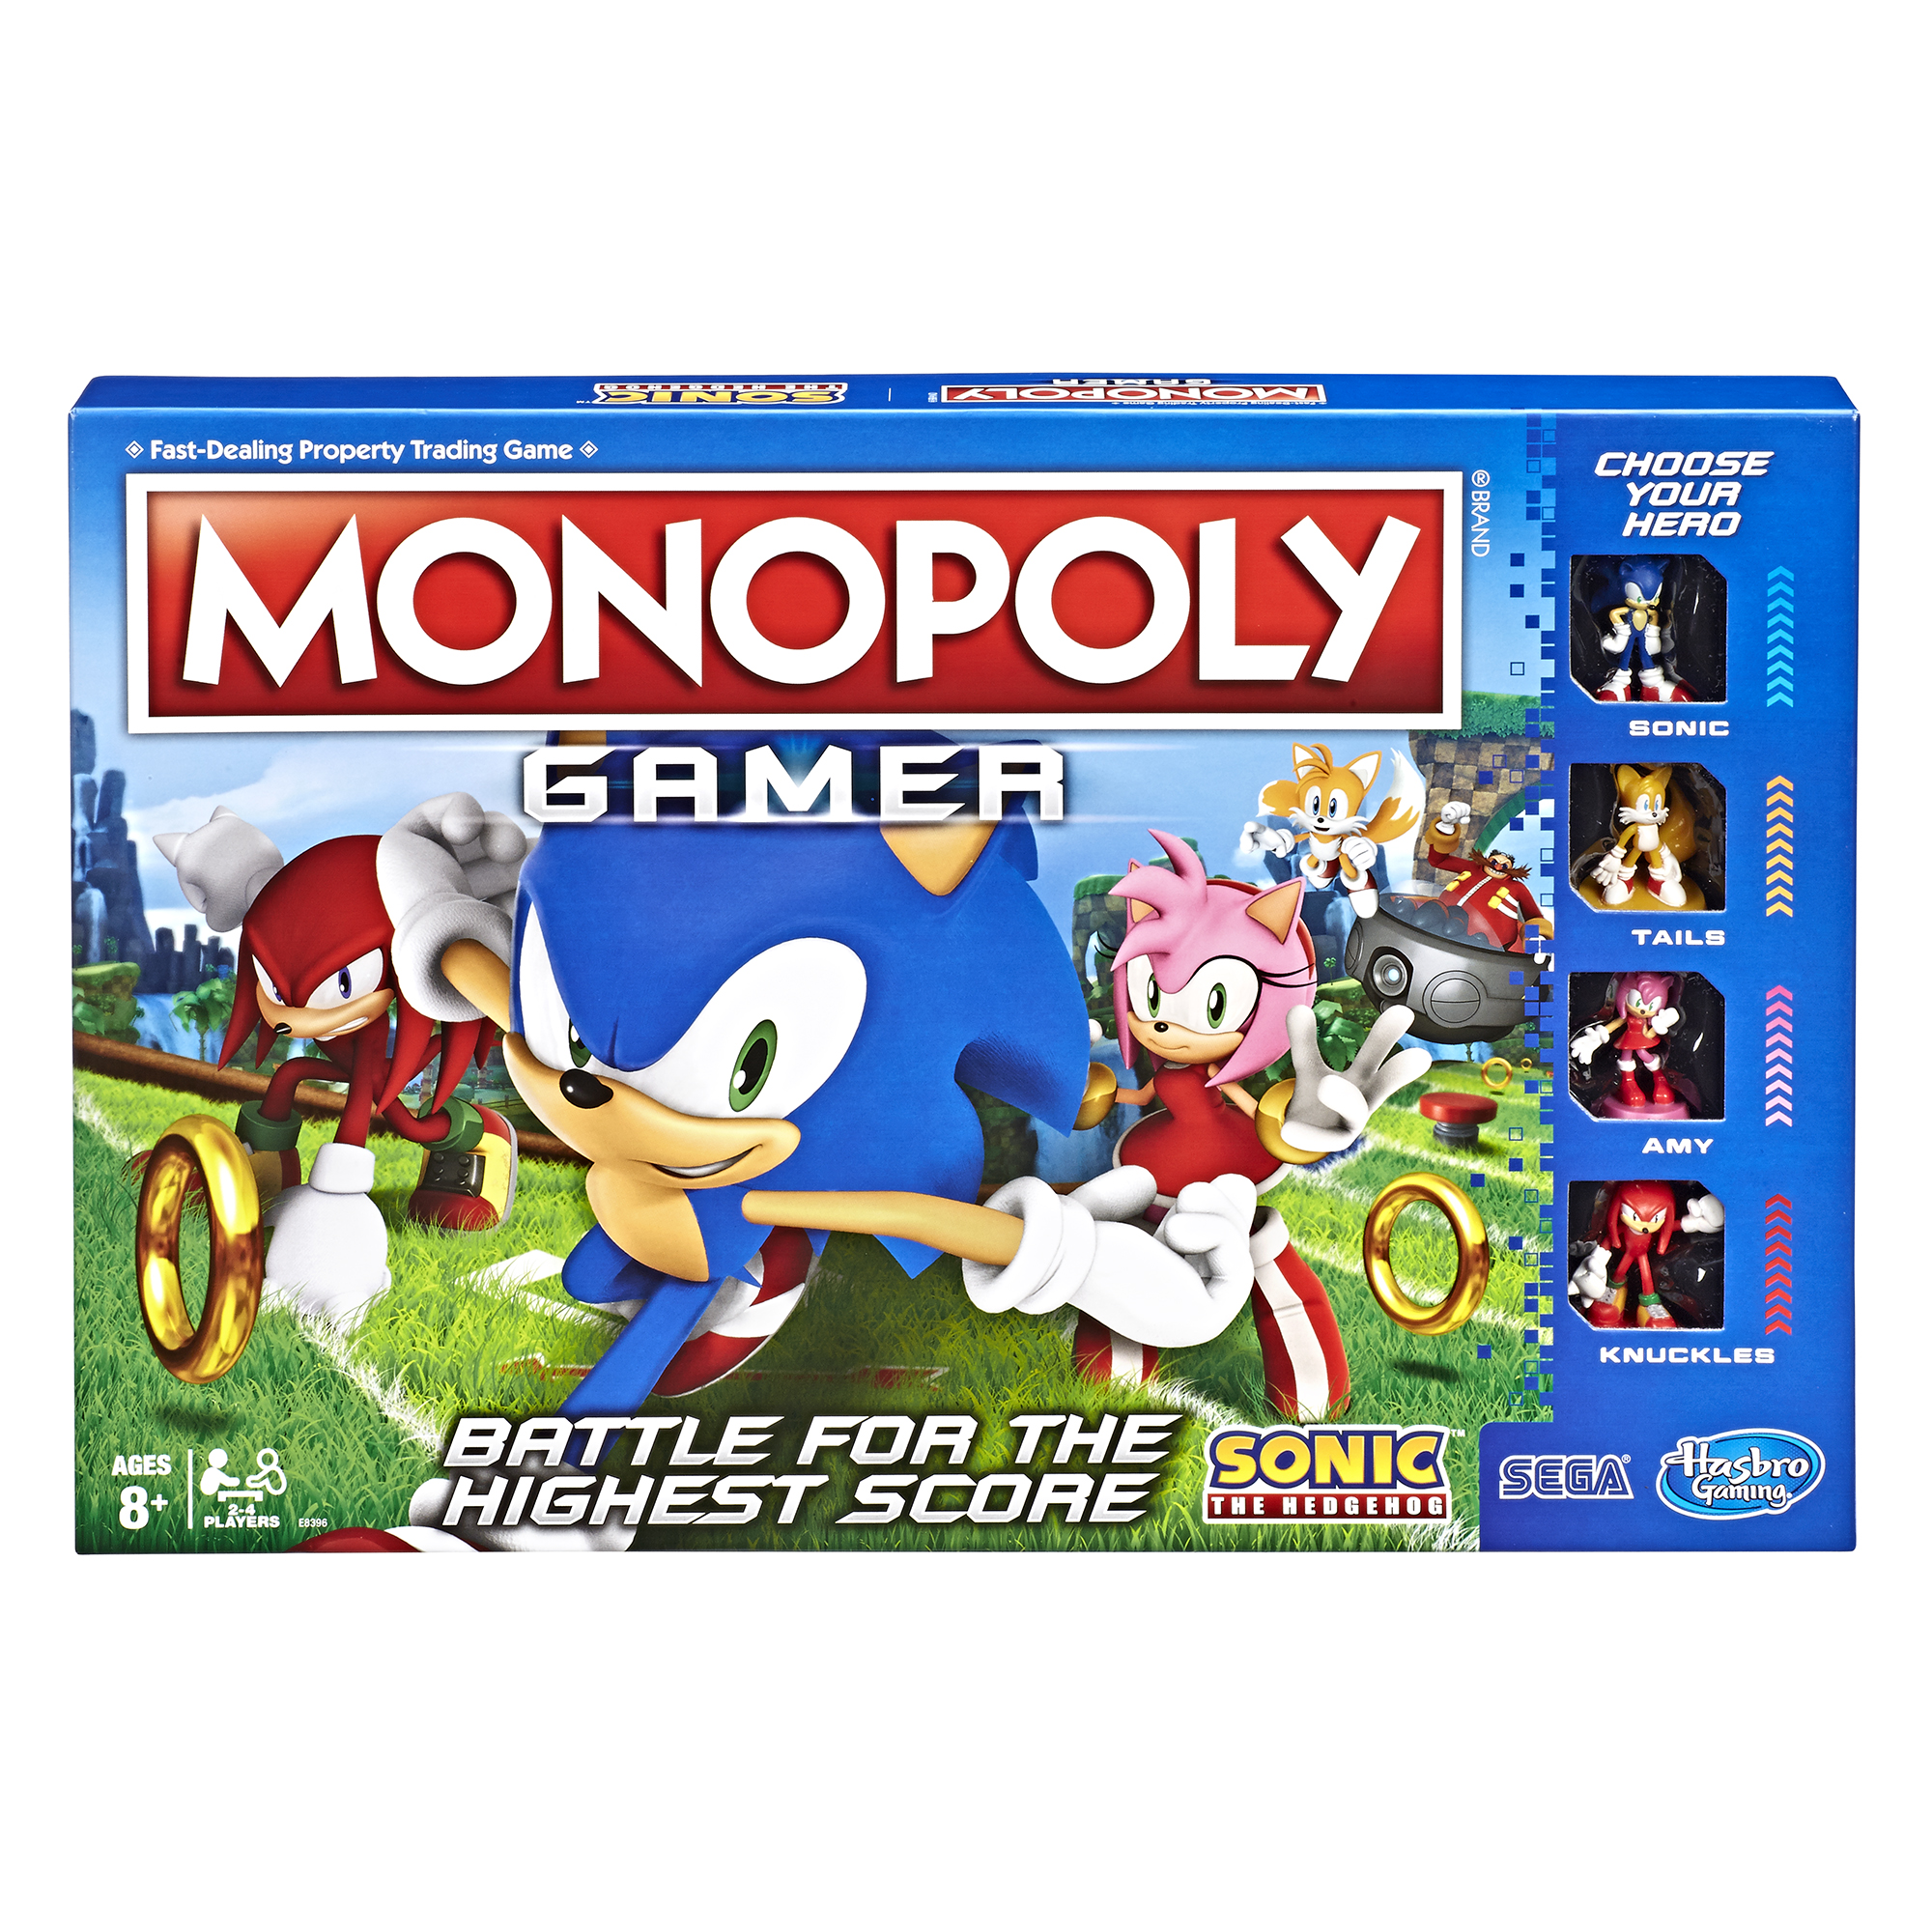 Monopoly Gamer Sonic The Hedgehog Edition Board Game For Ages 8 And Up Walmart Com Walmart Com